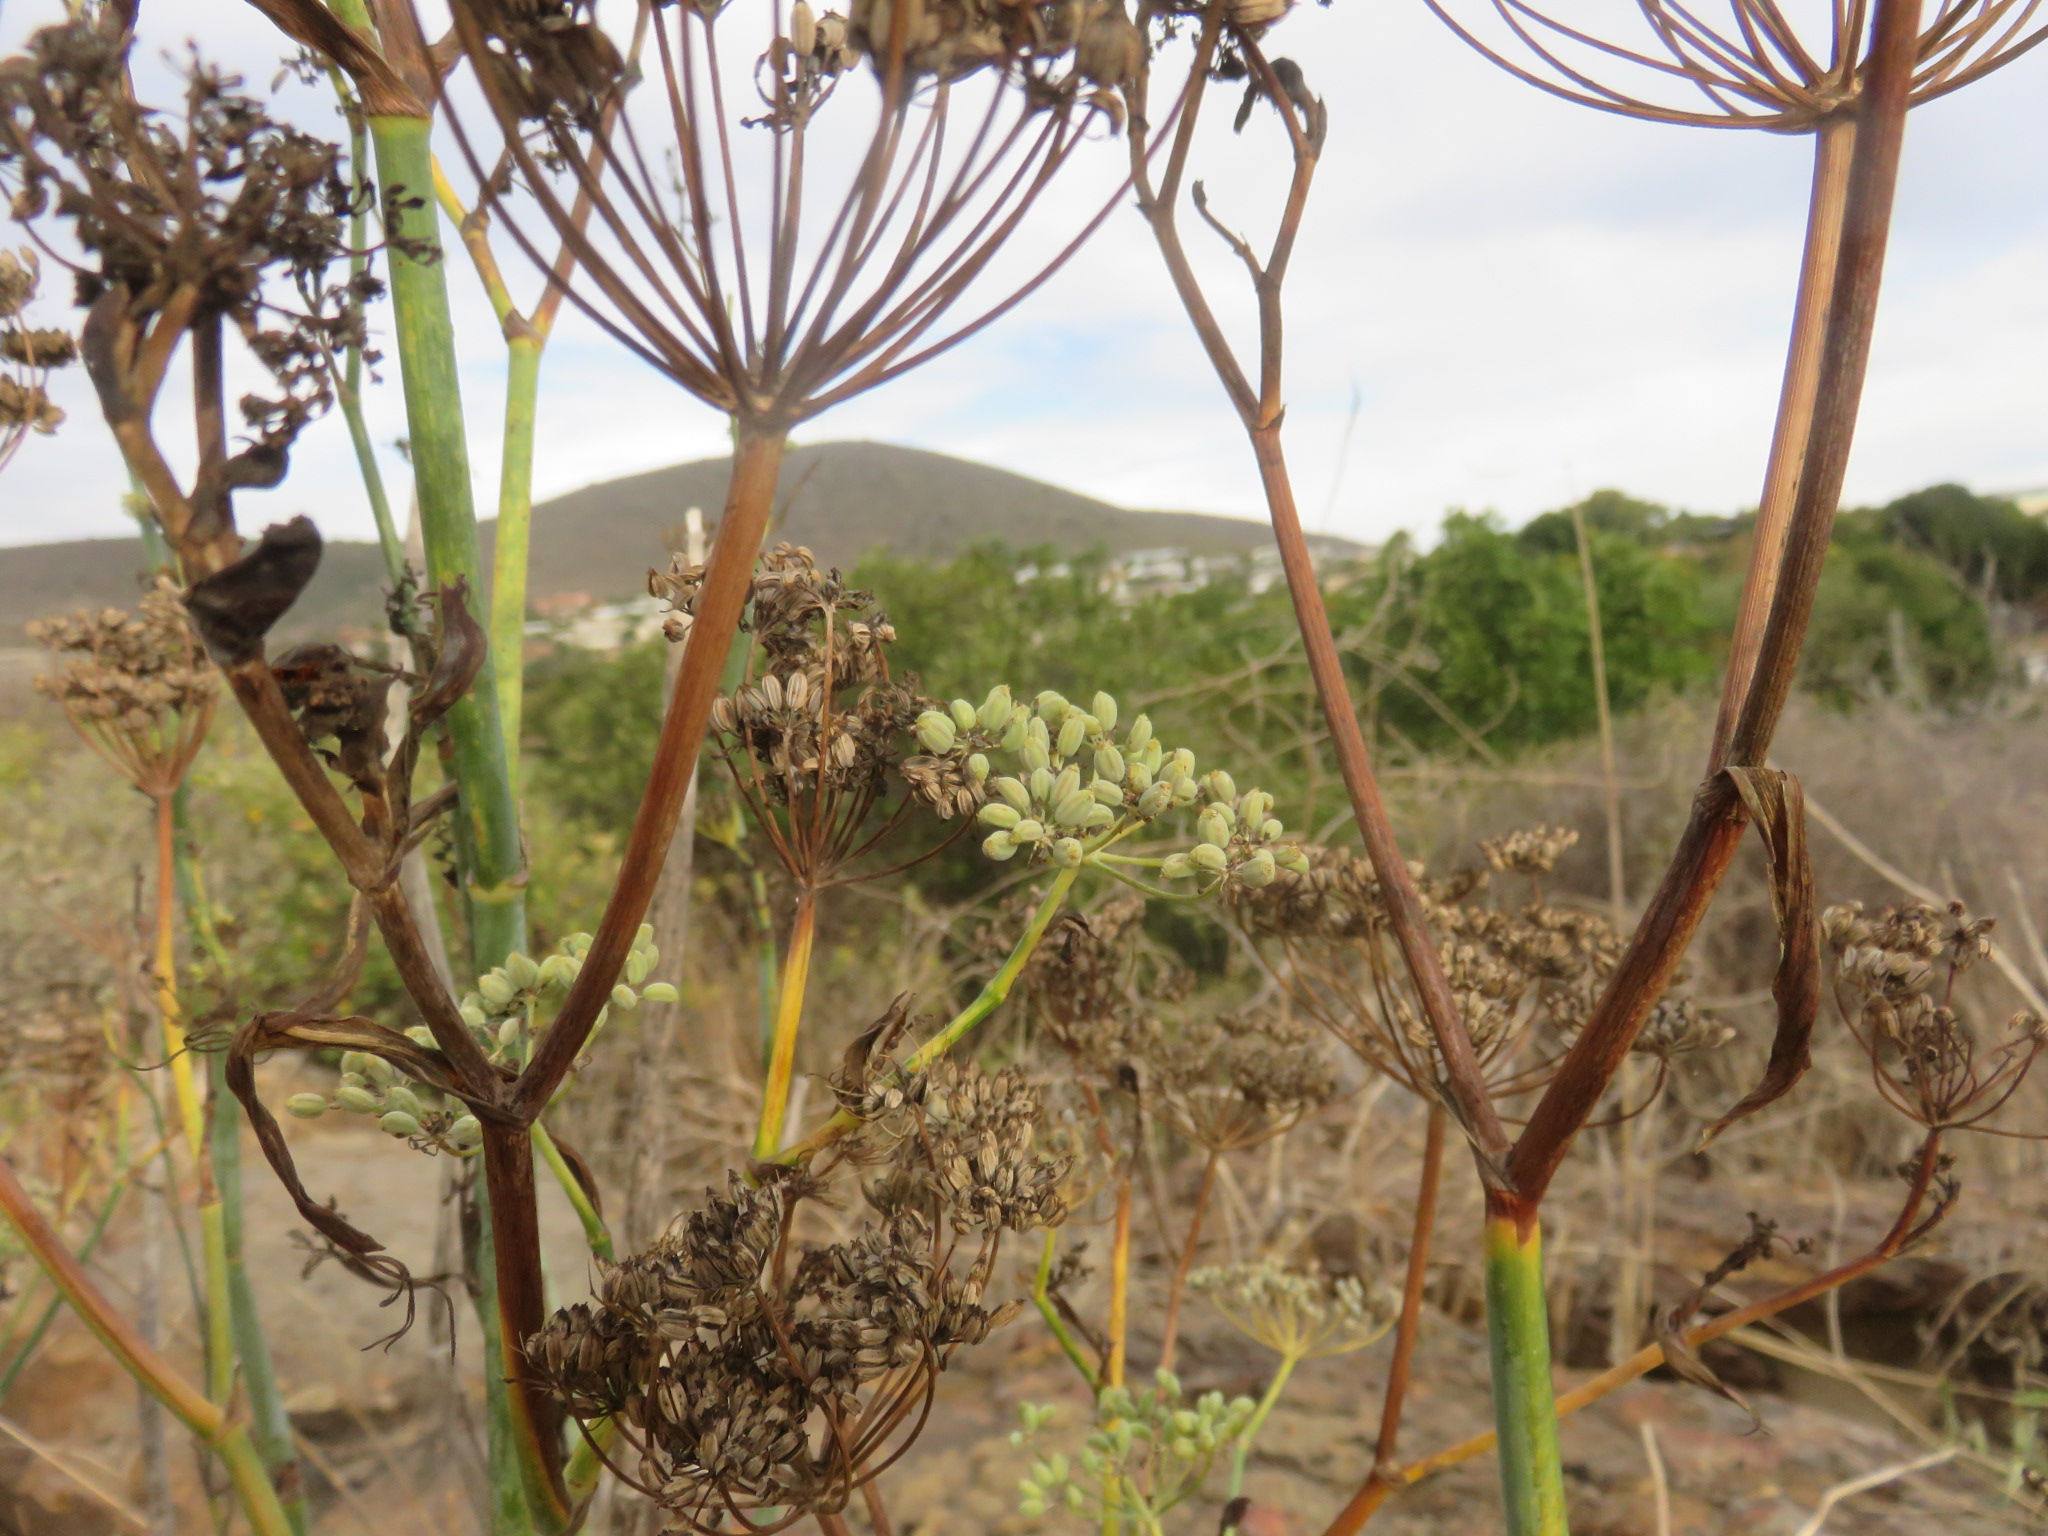 Growing fennel is made easy by the selection of wild seed from tough plants